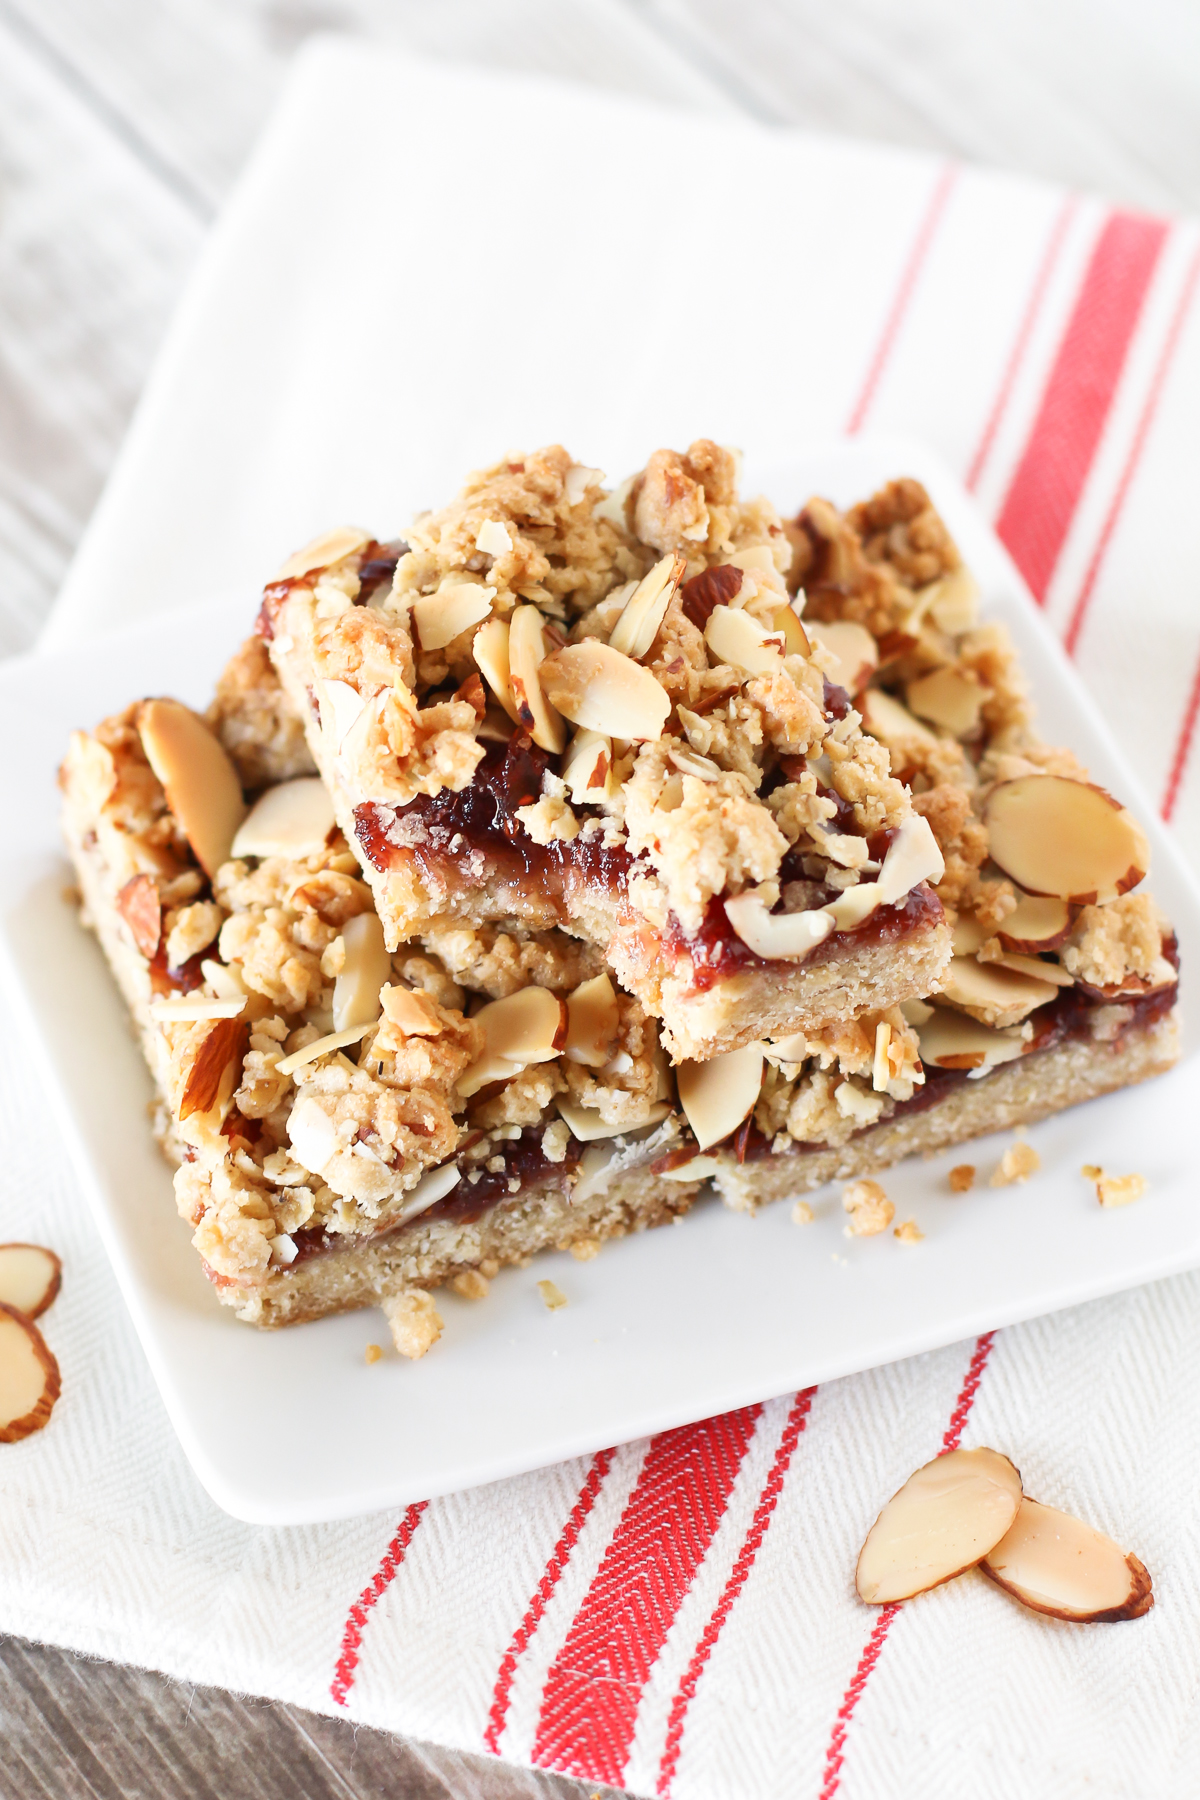 Gluten Free Vegan Raspberry Almond Crumb Bars. Layers of crumb topping, sweet raspberry jam and toasted almonds. The perfect bite!